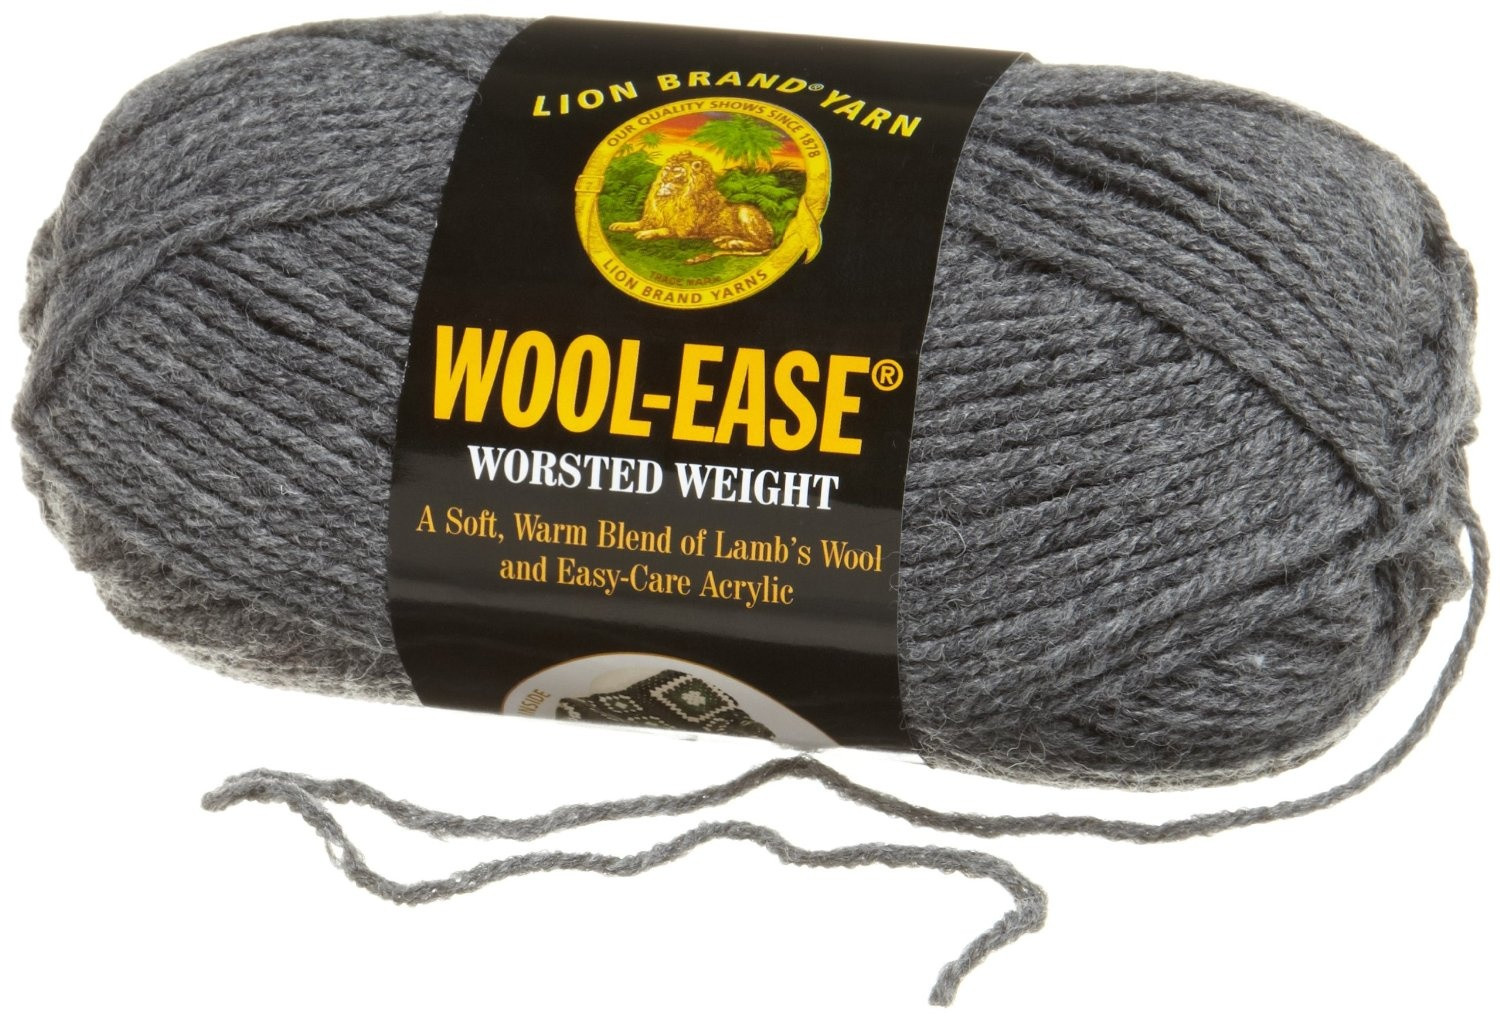 Lion Brand Wool Ease Luxury Lion Brand Yarn Wool Ease Yarn Best Price Of Lion Brand Wool Ease New Lion Brand Yarn Wool Ease Yarn Best Price